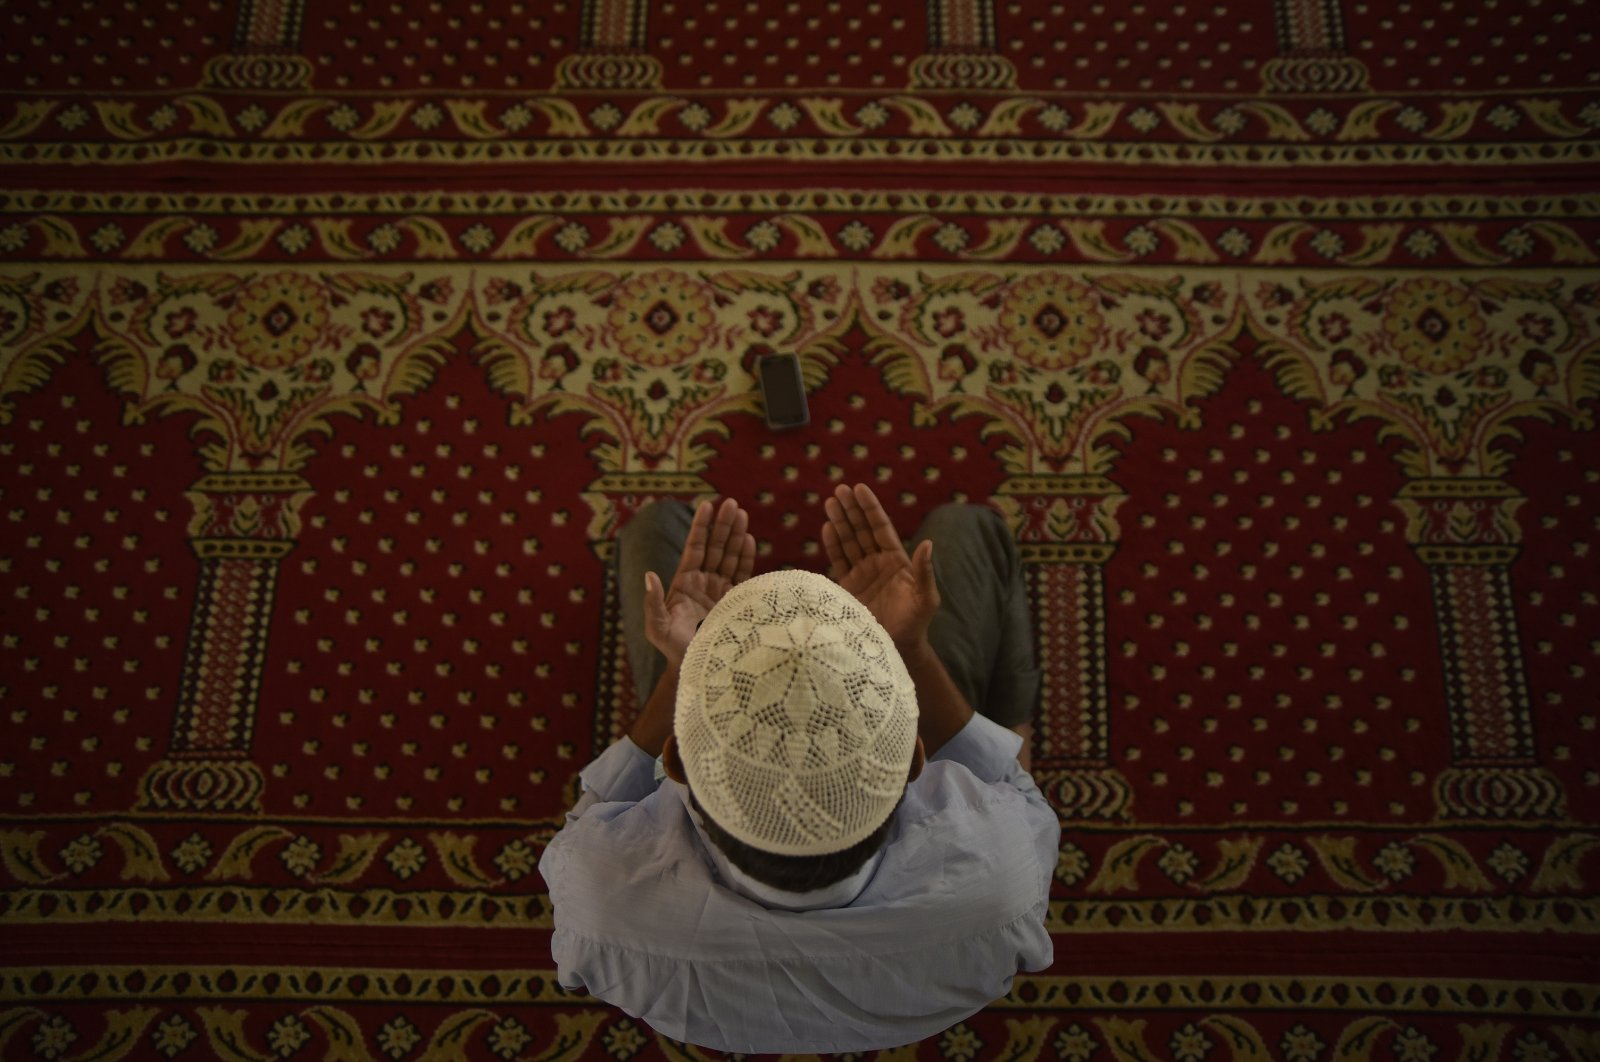 A Nepalese Muslim performs the ritual Friday prayer in a mosque at Nepal Jame Masjid, Kathmandu, Nepal, Dec. 18, 2020. (NurPhoto via Getty Images)